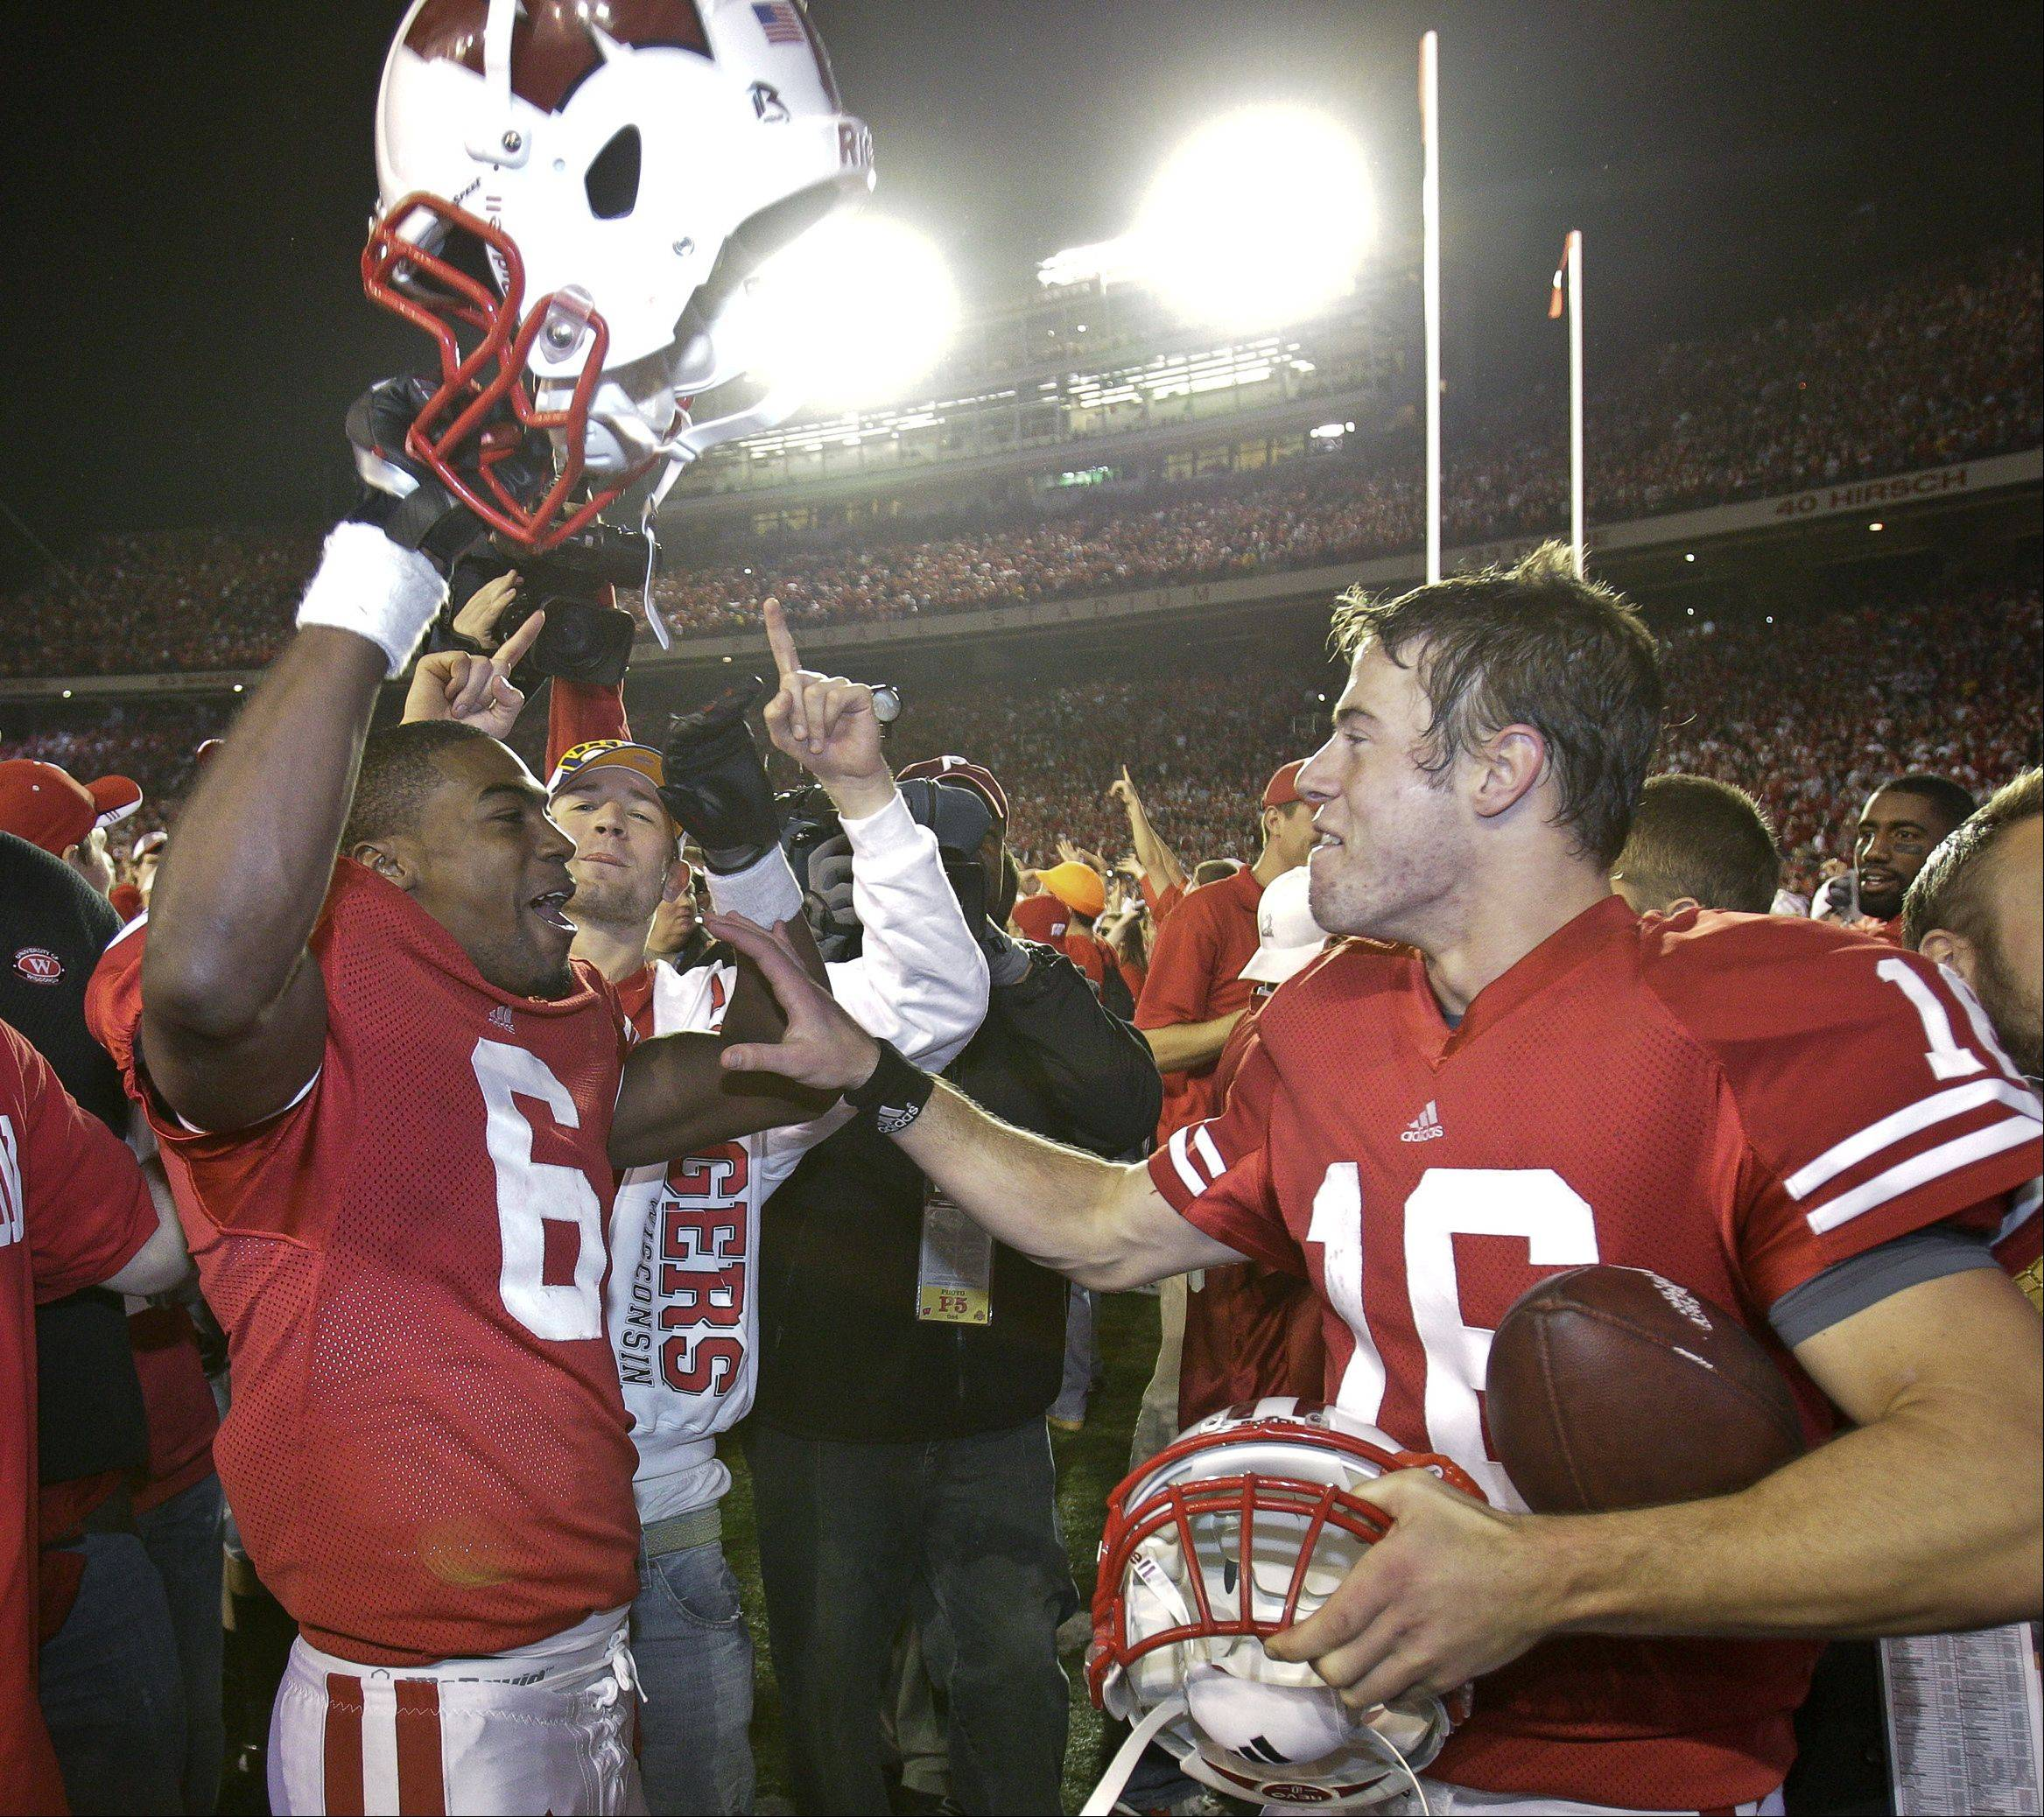 Wisconsin fans celebrate with Wisconsin wide receiver Isaac Anderson (6) and quarterback Scott Tolzien (16) after Wisconsin upset No. 1 Ohio State 31-18 in an NCAA college football game Saturday, Oct. 16, 2010, in Madison, Wis.